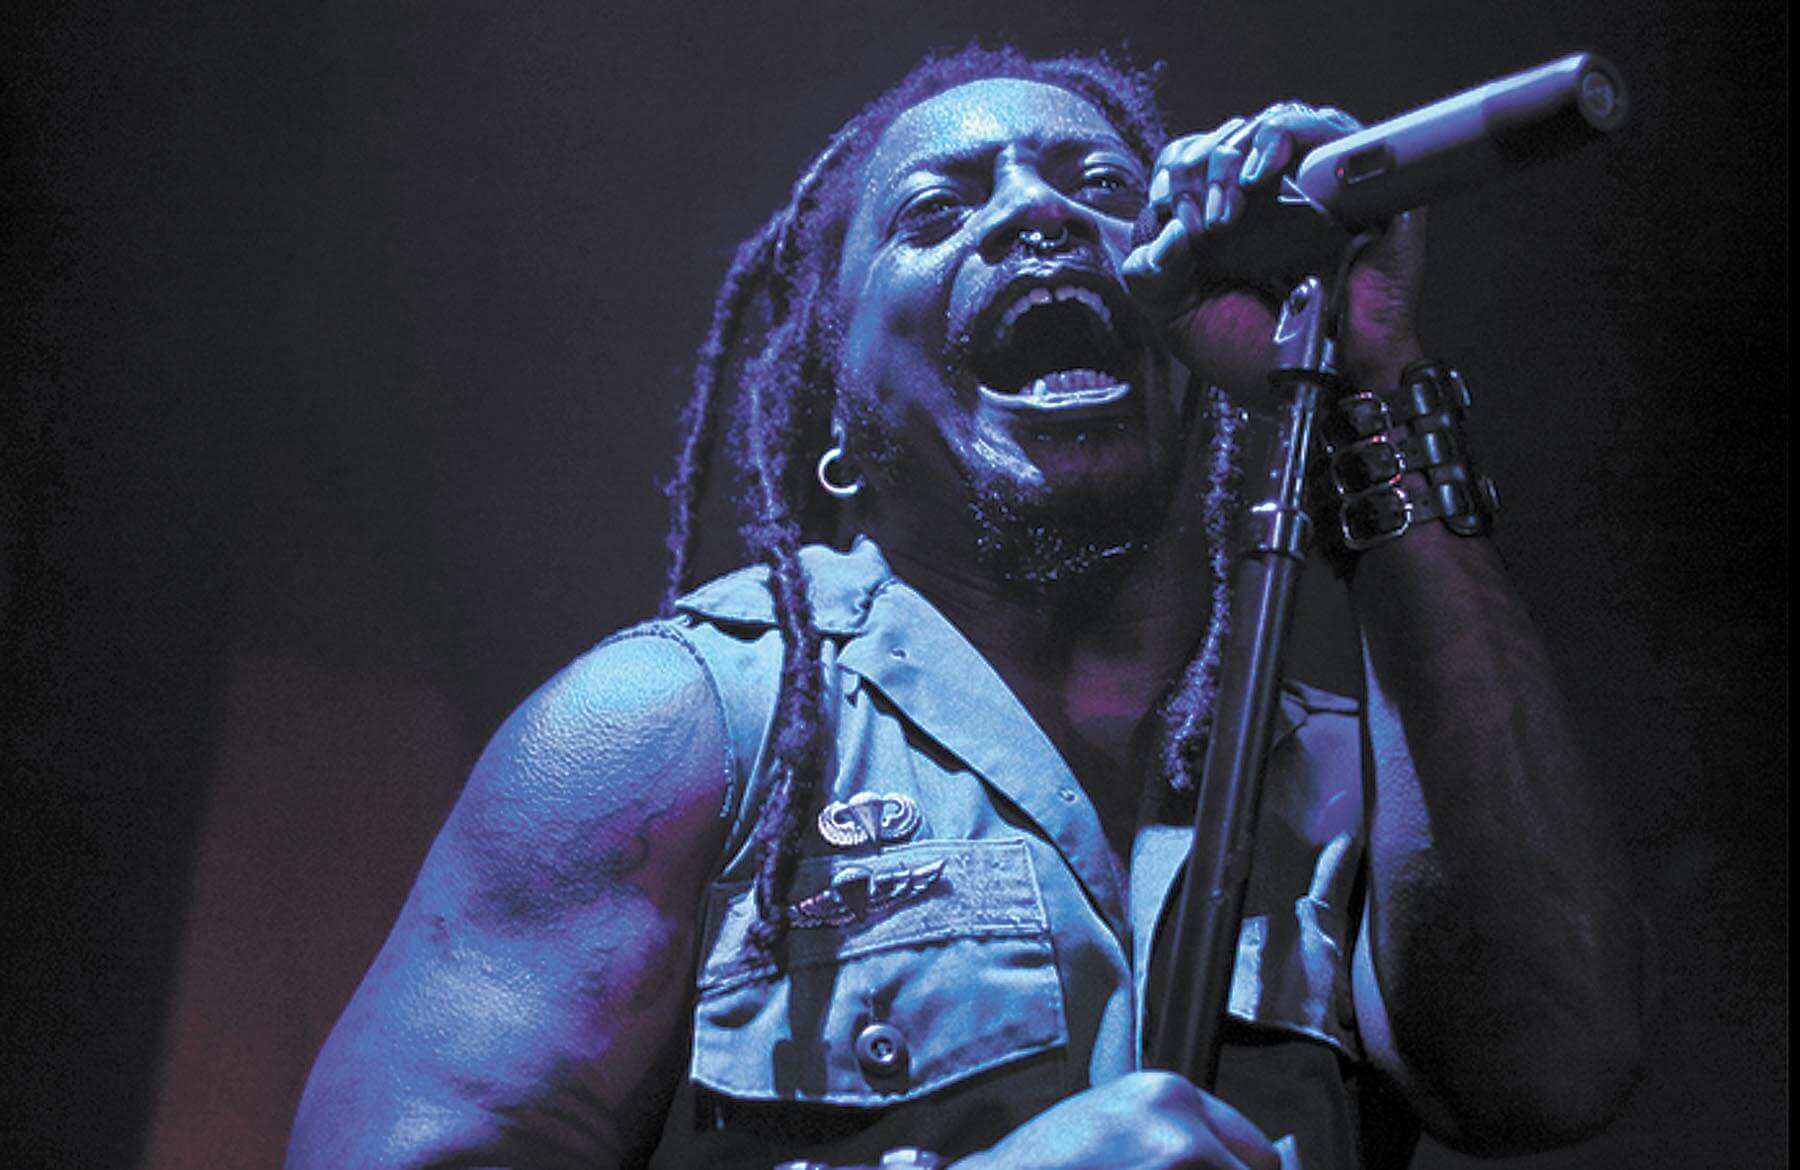 Nine albums later, the hits keep coming for Sevendust